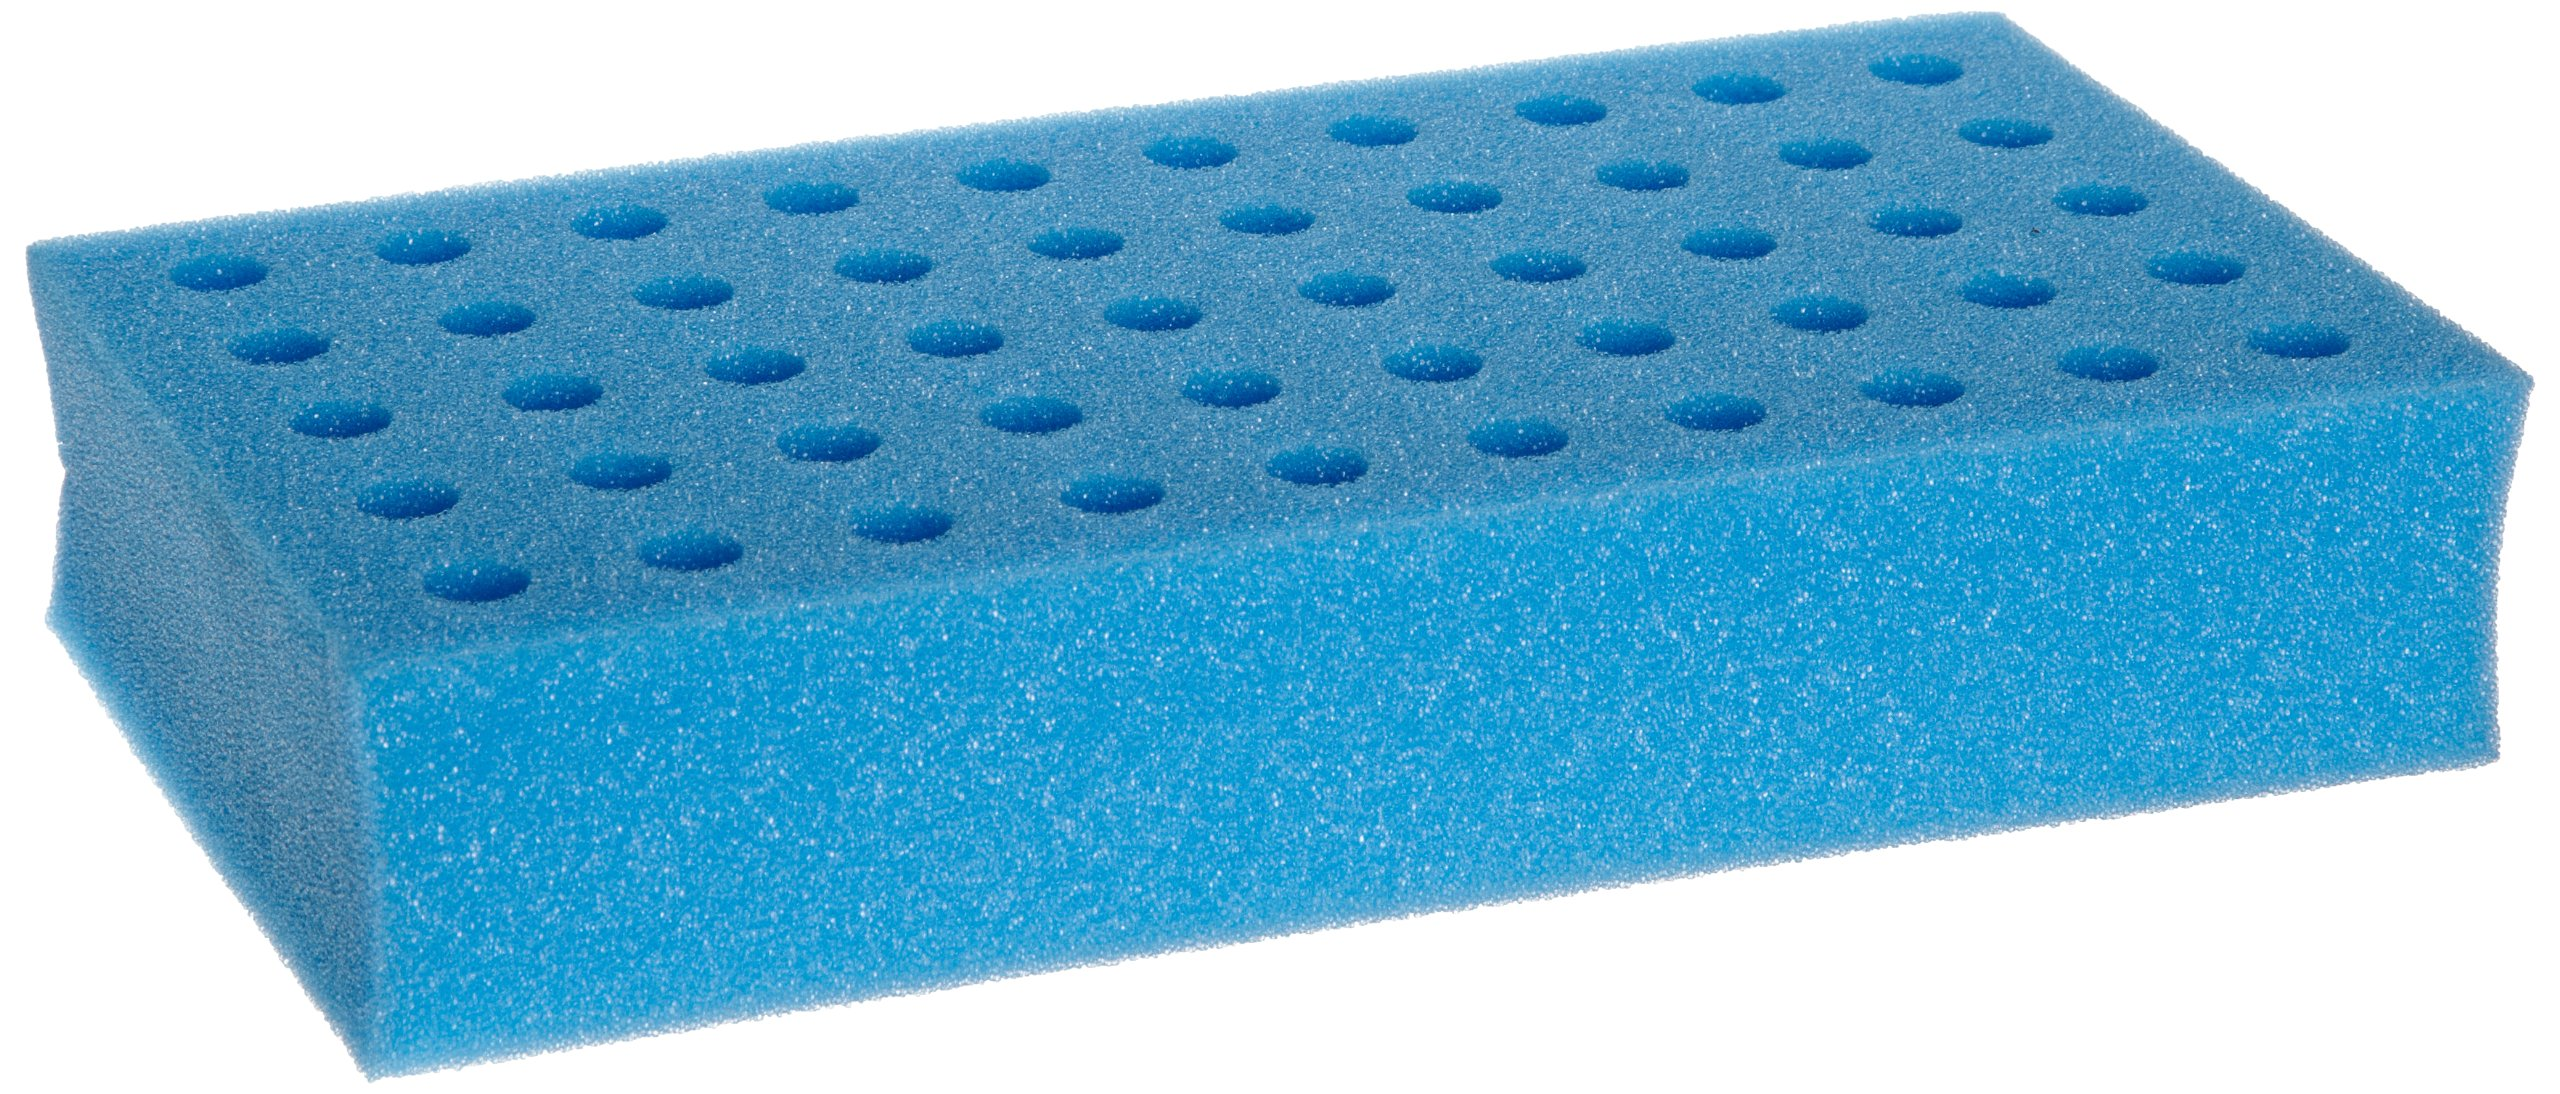 Talboys 945072 Foam Test Tube Rack for 12mm Tube, 50 Tube Capacity, Blue